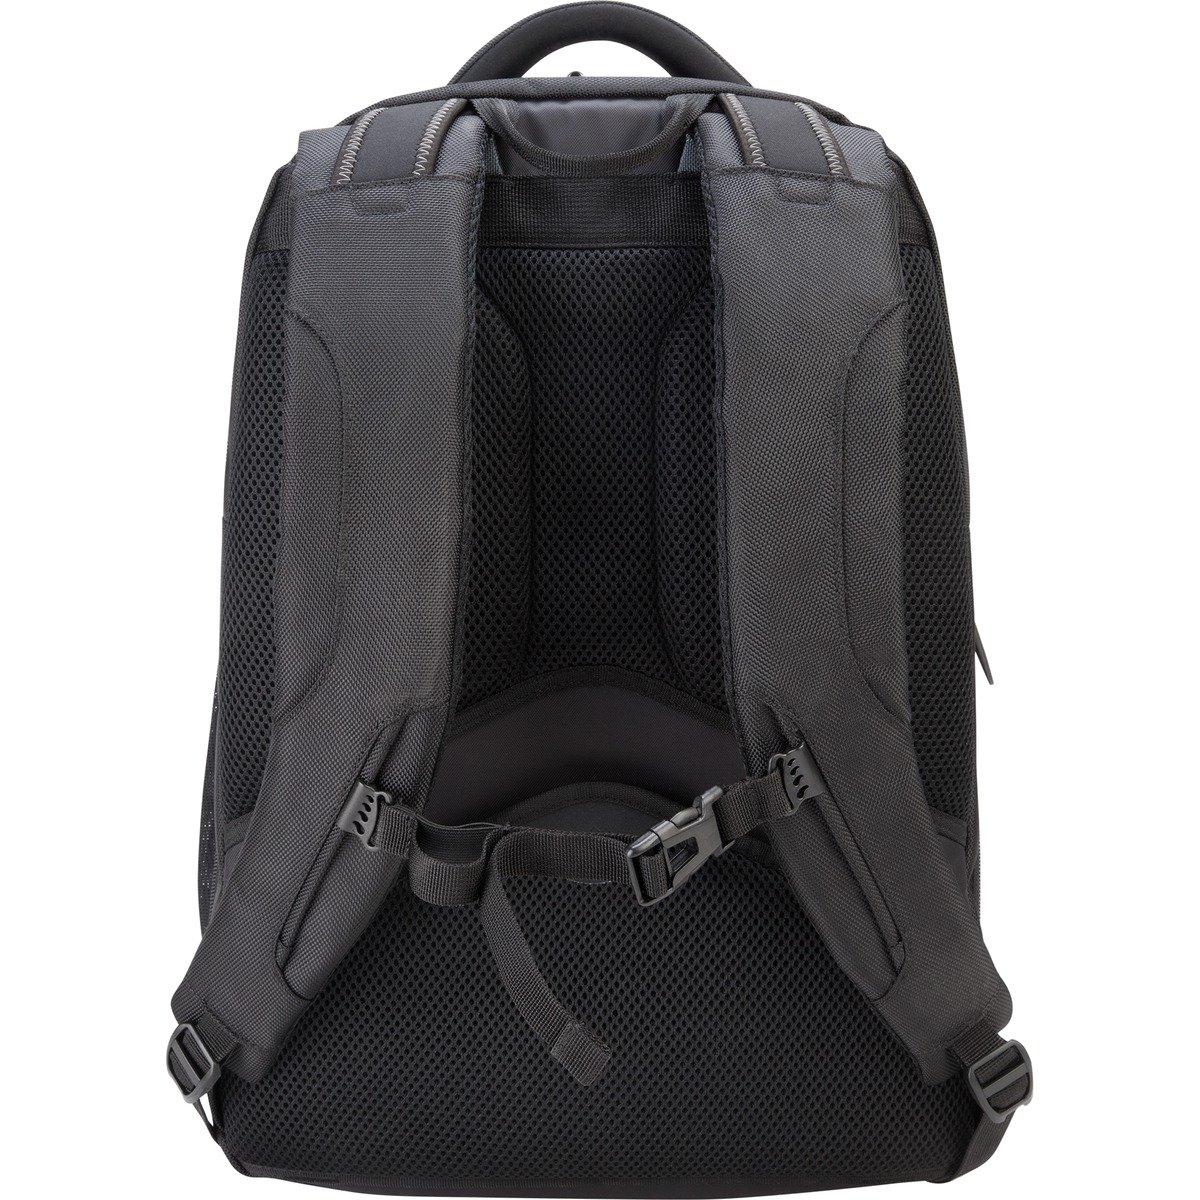 Targus Checkpoint-Friendly Corporate Traveler Backpack for 15.4 Inch Laptops  CUCT02B (Black) - Buy Targus Checkpoint-Friendly Corporate Traveler Backpack  ... c91a3f9ead1b6